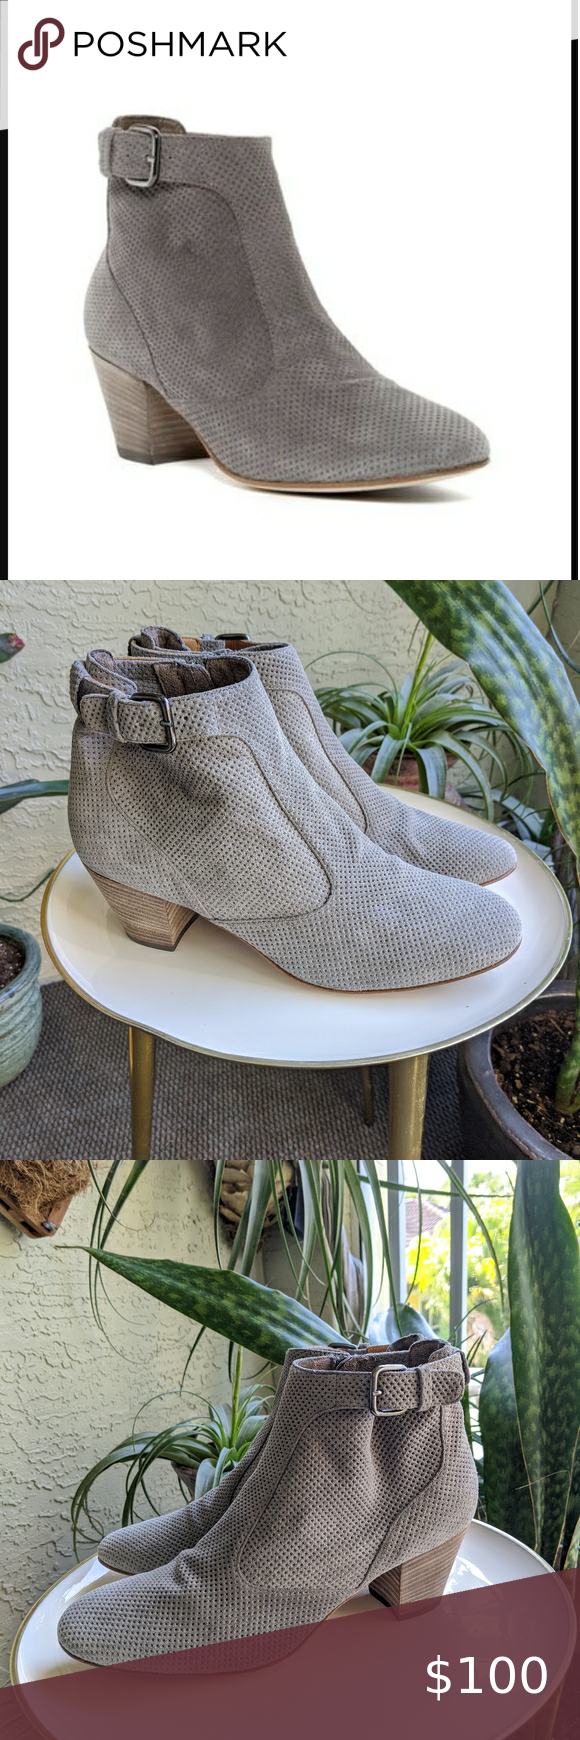 COPY New Aquatalia 10 Gray France Ankle Boot Sue